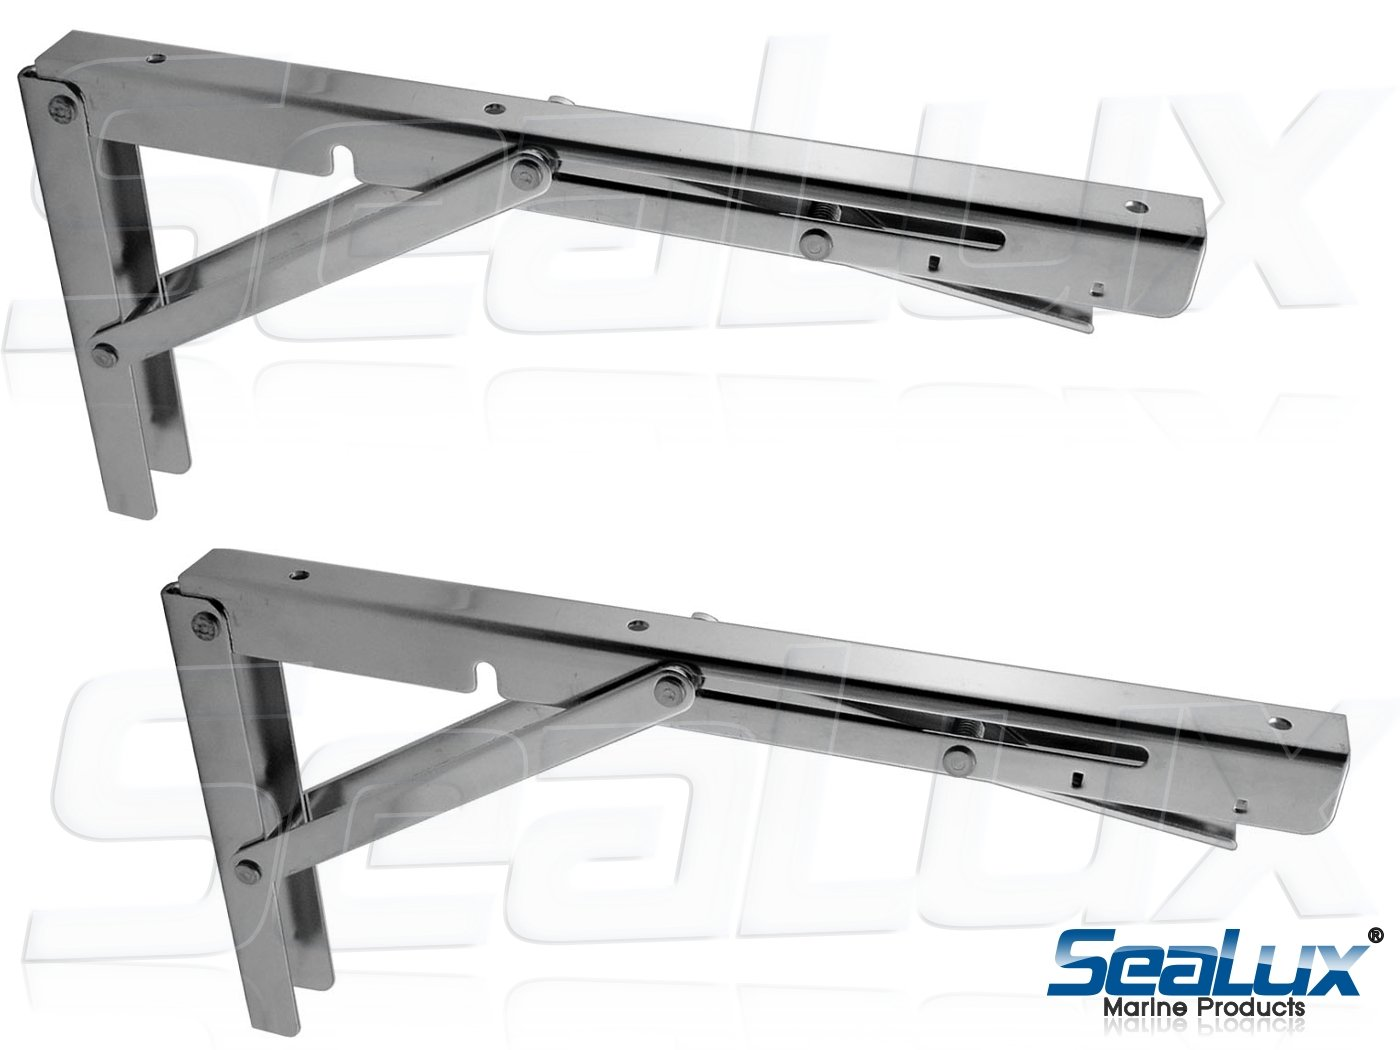 SeaLux Stainless Steel Folding Brackets 90 degree Shelf, Bench, Table Support 12'' Long with easy reach Long release Handle / Max. Bearing 330 lb (Sold as 2 pcs)